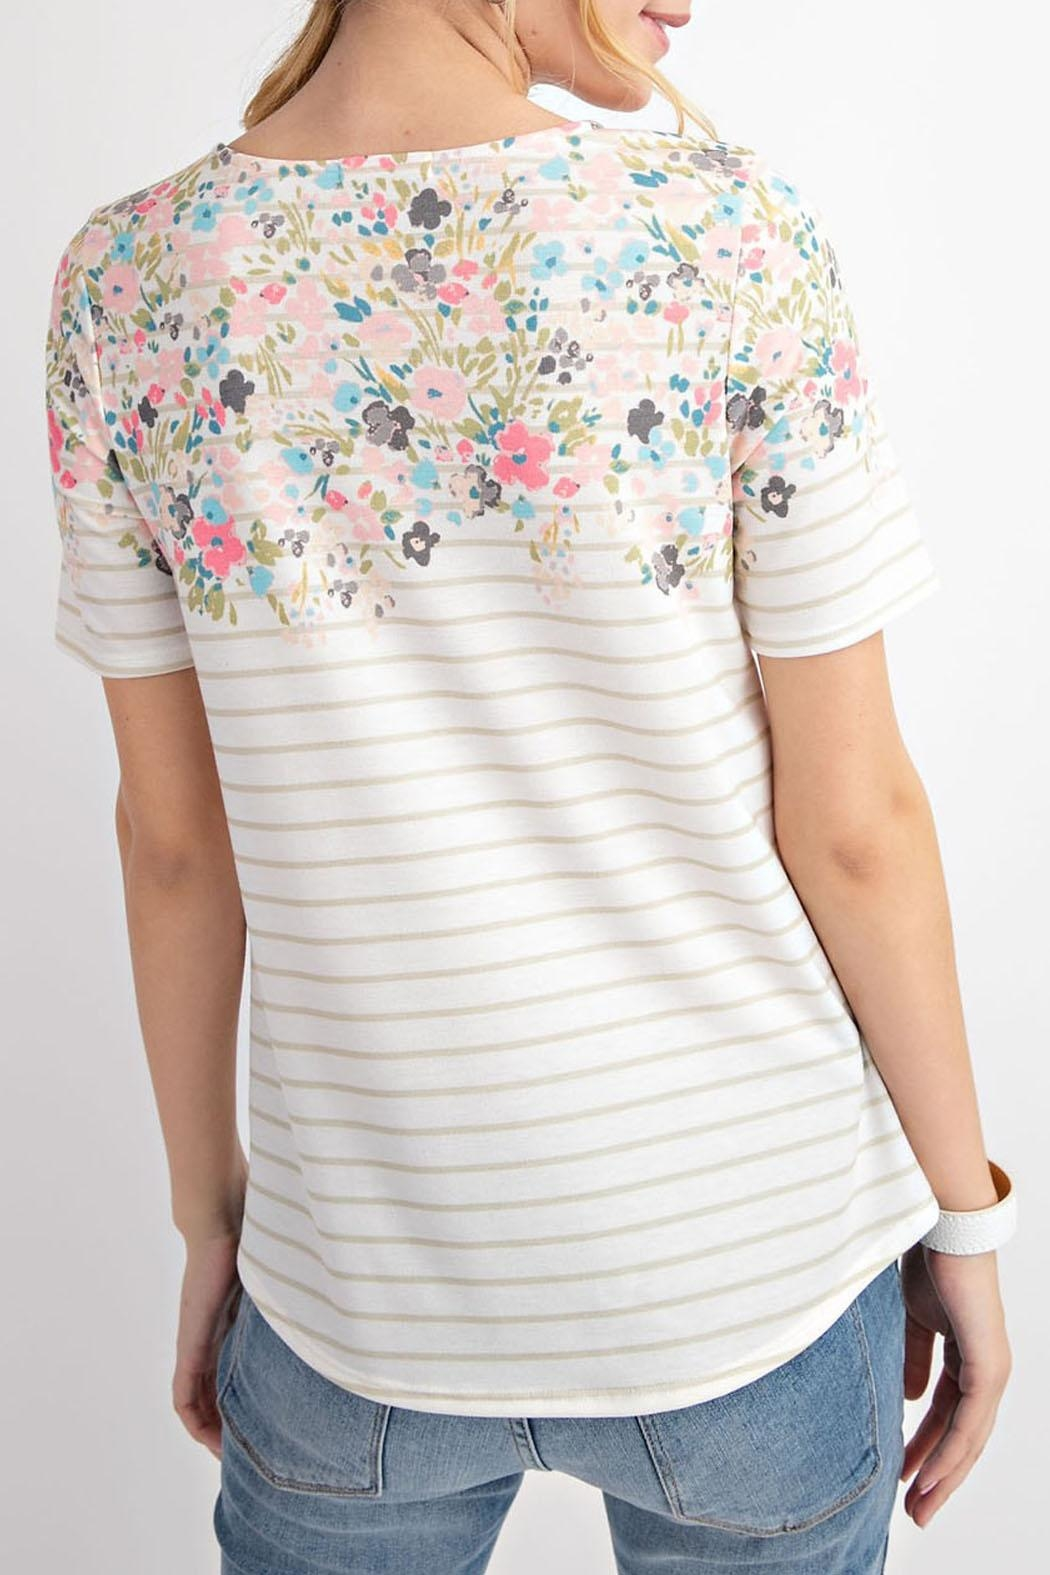 12pm by Mon Ami Floral Taupe Top - Back Cropped Image